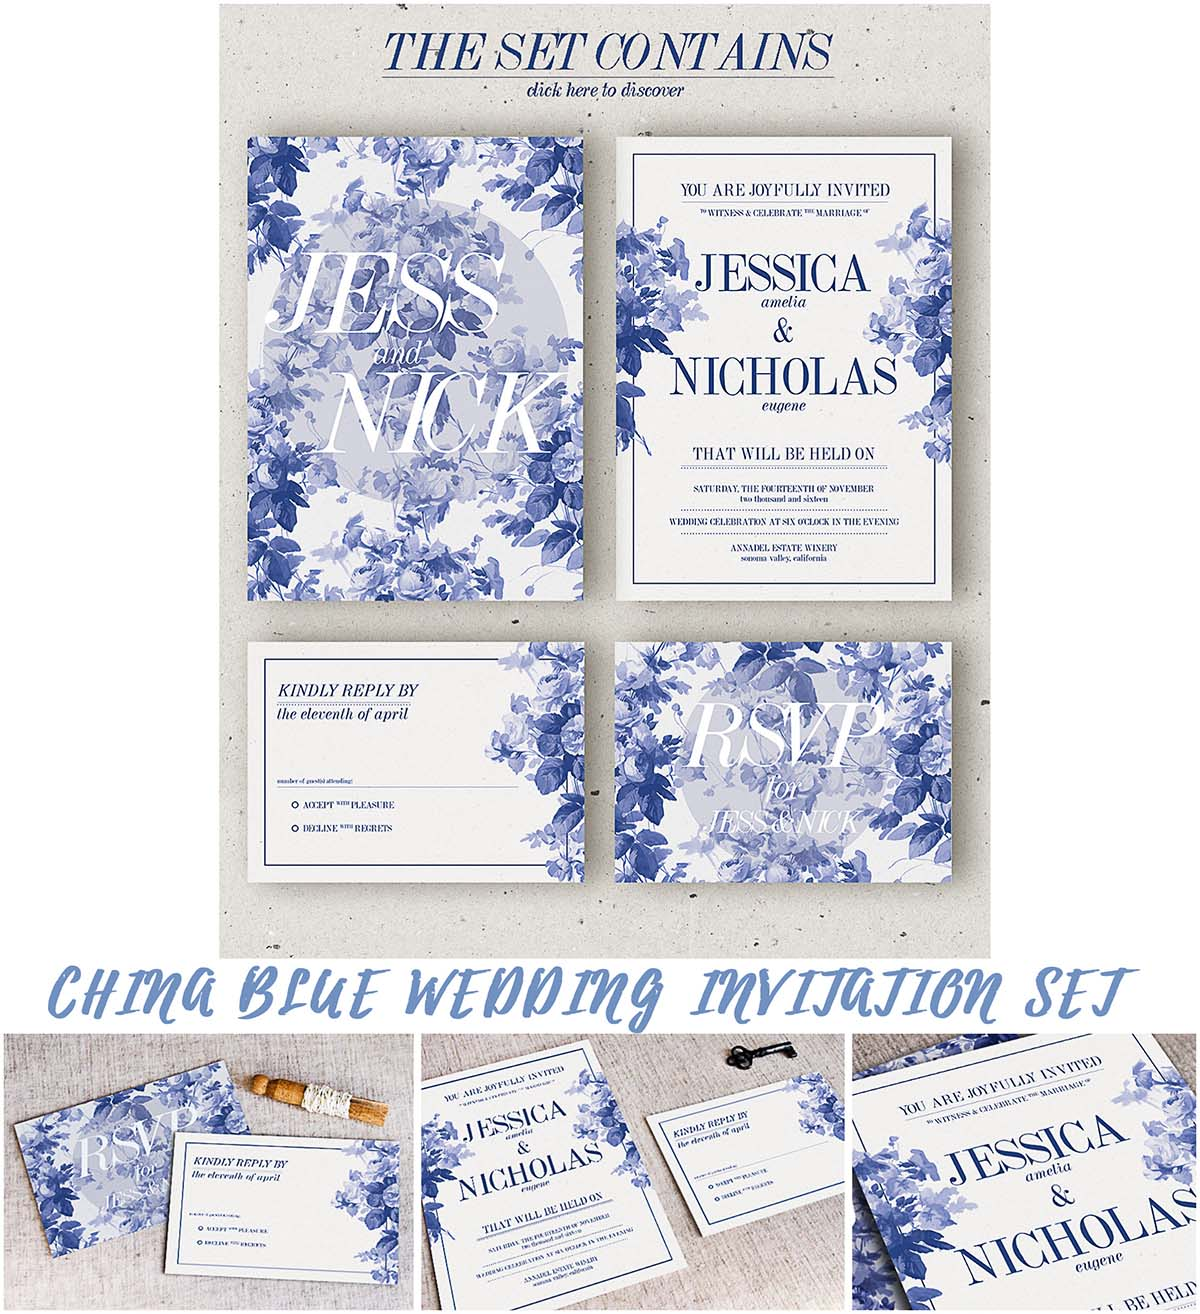 Floral china blue wedding invitation set